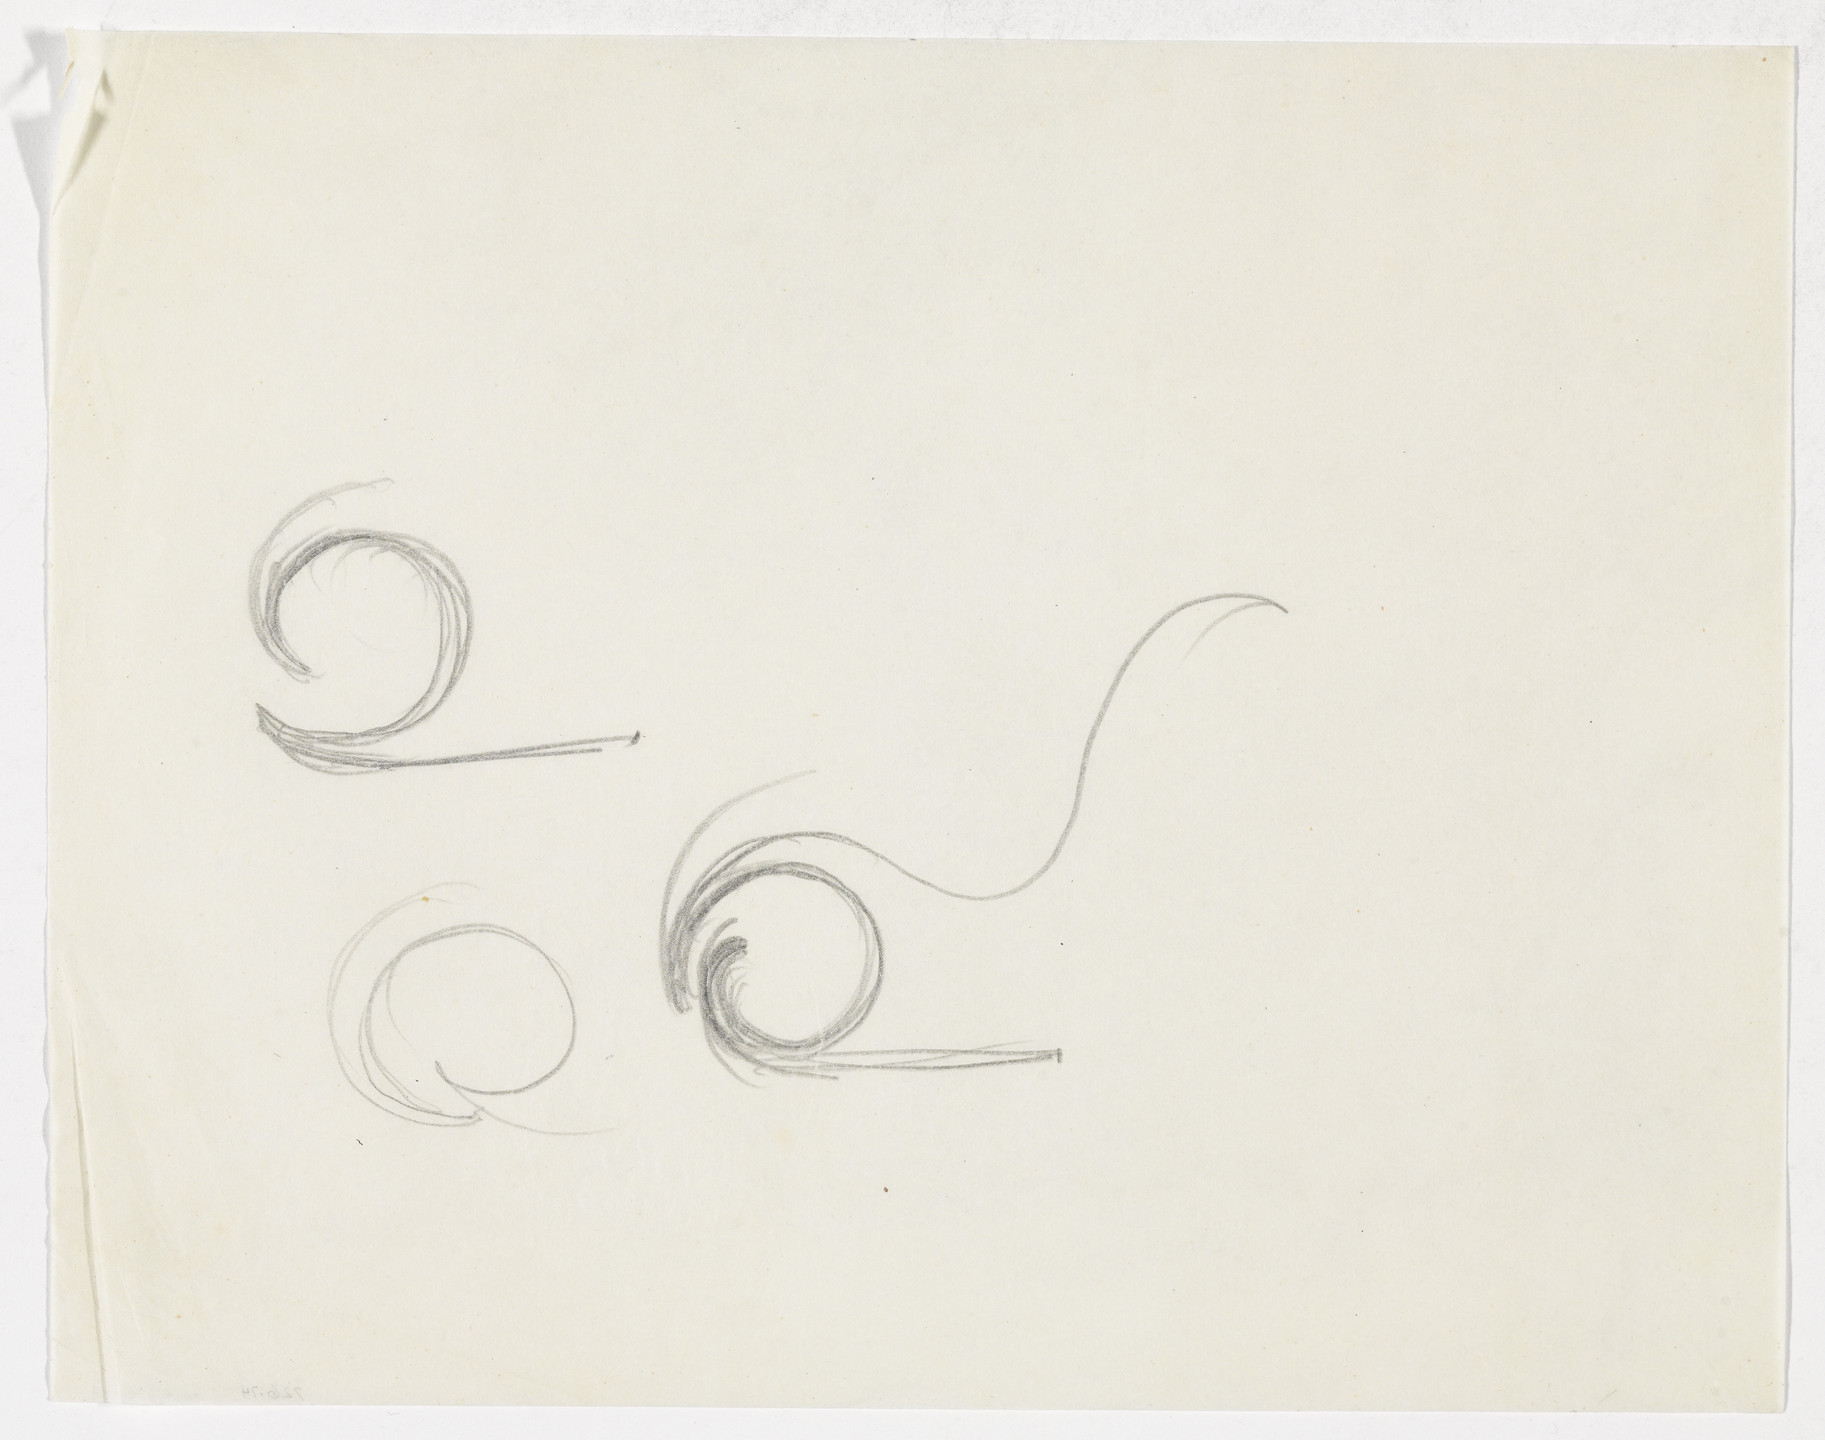 Ludwig Mies van der Rohe. Lounge Chair (Elevation sketches). 1933-1934